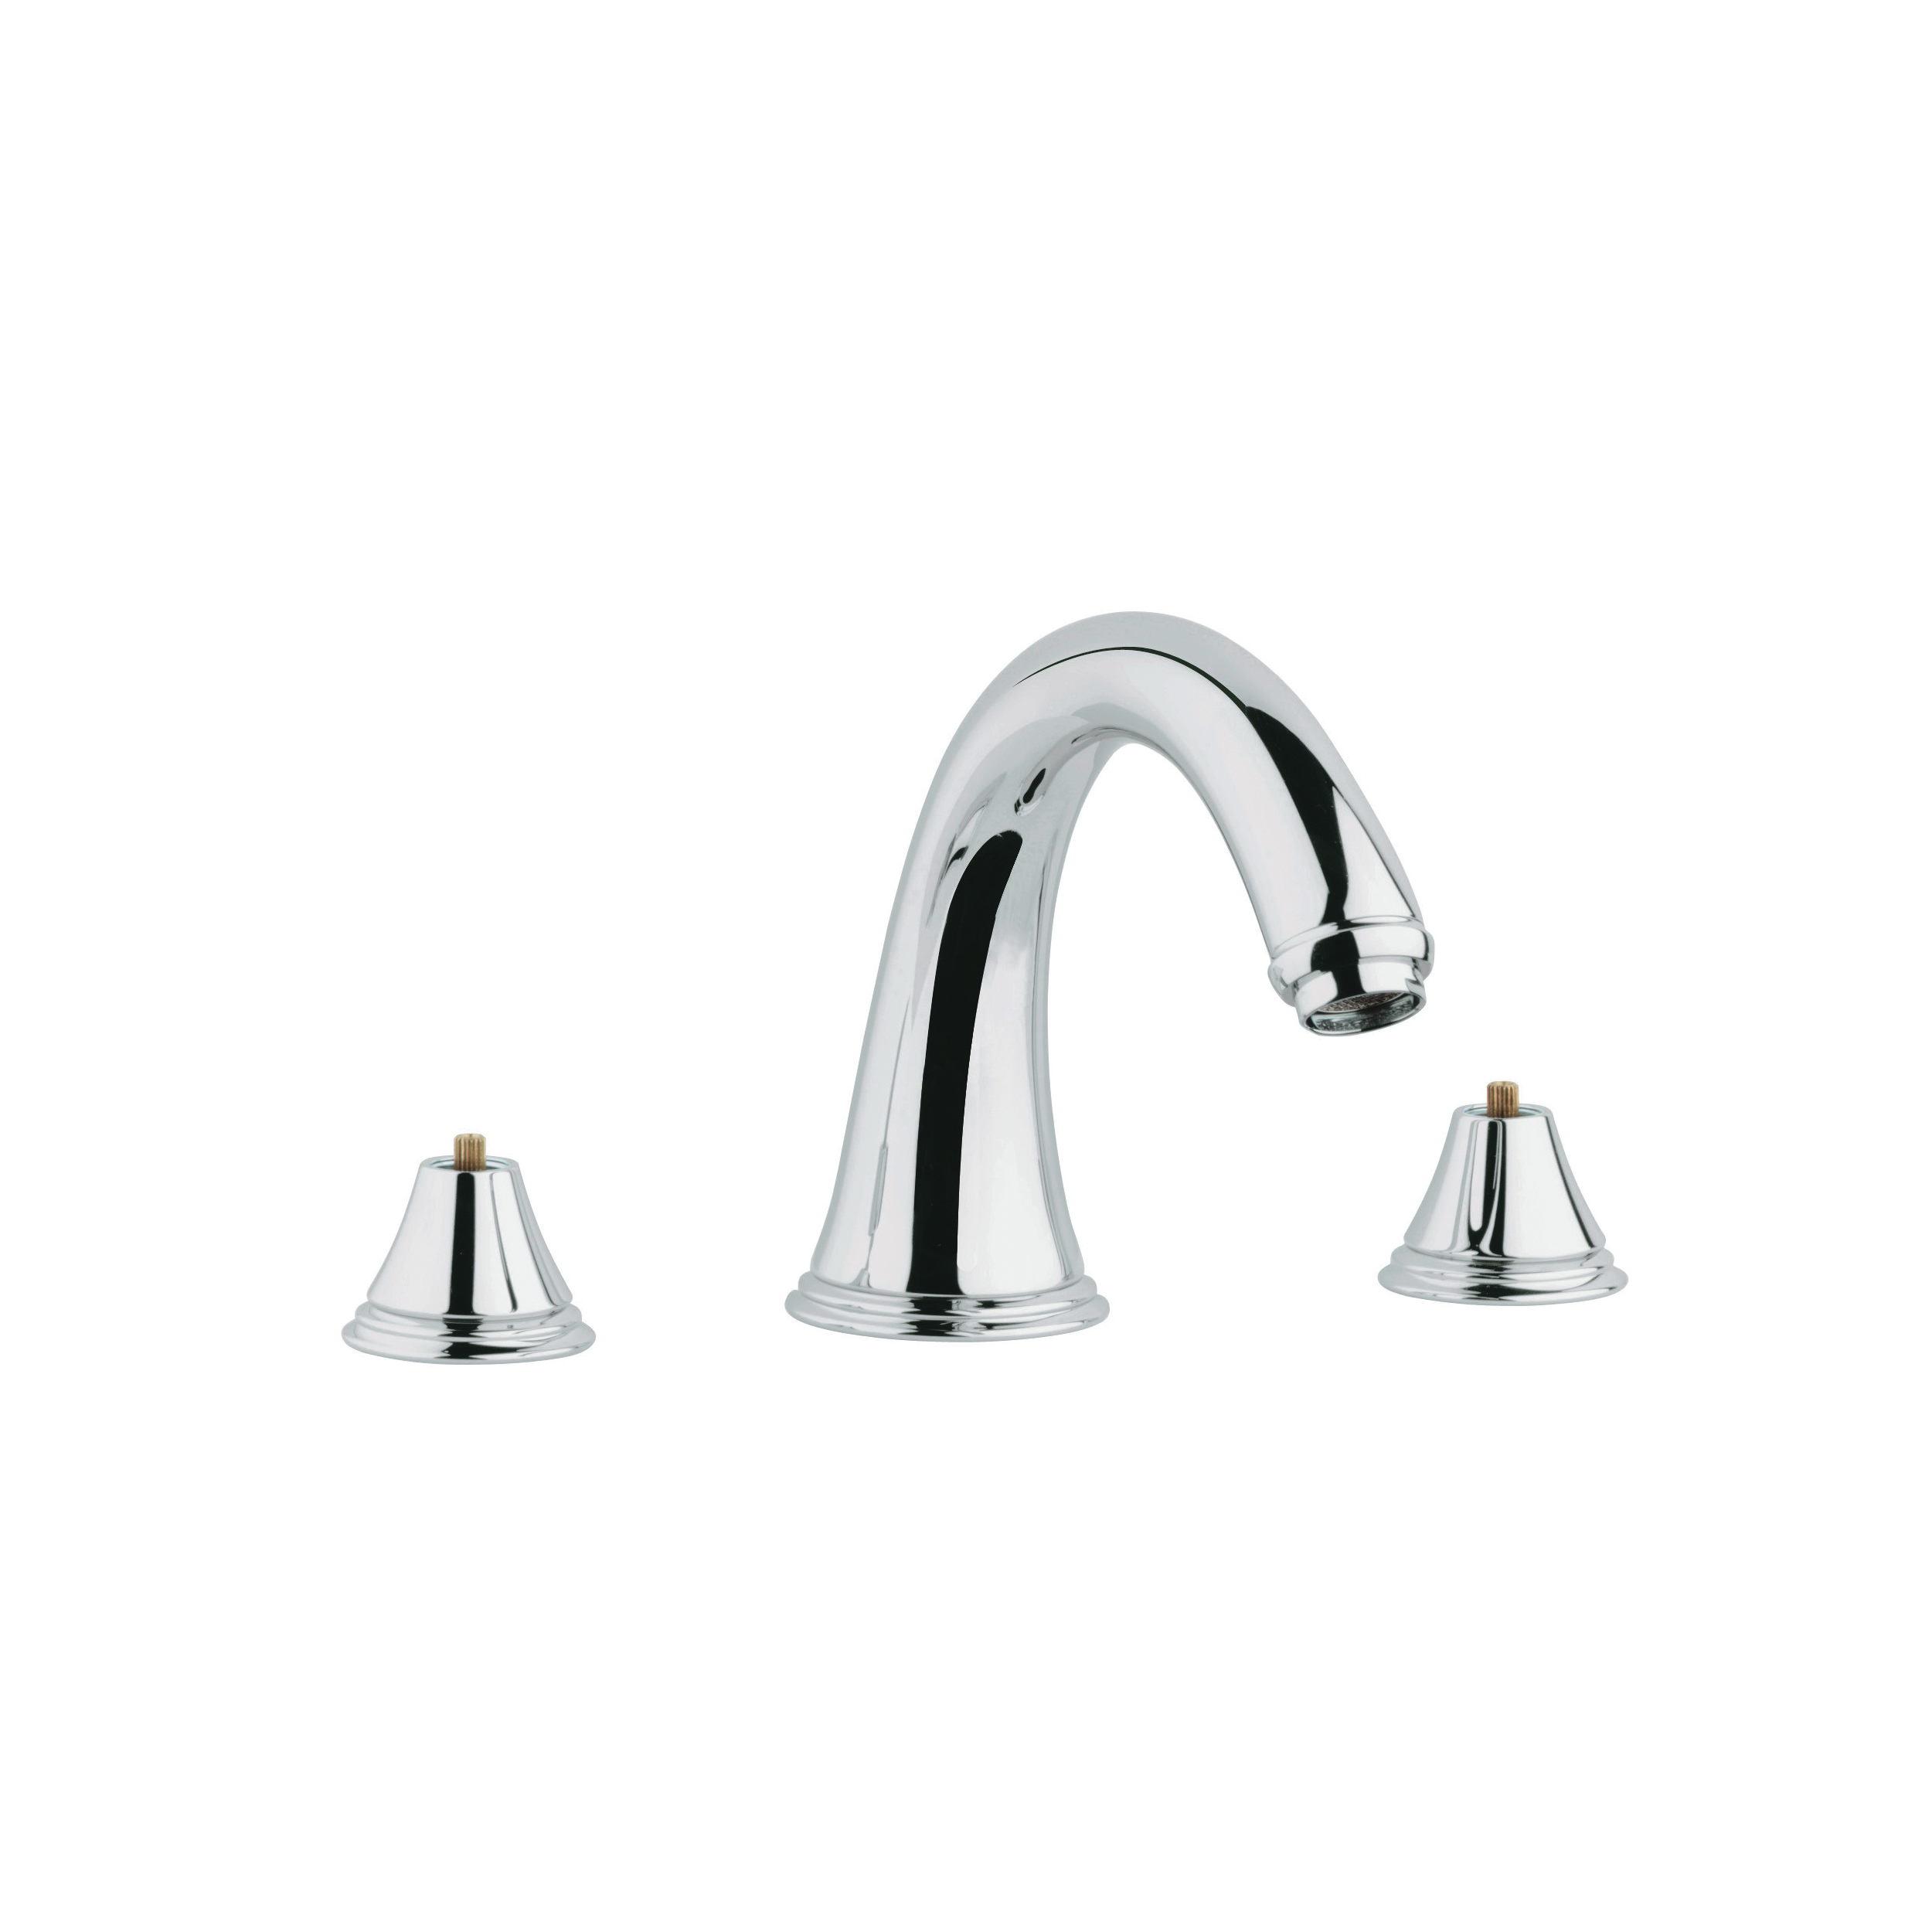 GROHE 25054000 Geneva™ Roman Bathtub Faucet, 12.6 gpm, StarLight® Chrome Plated, Hand Shower Yes/No: No, Import